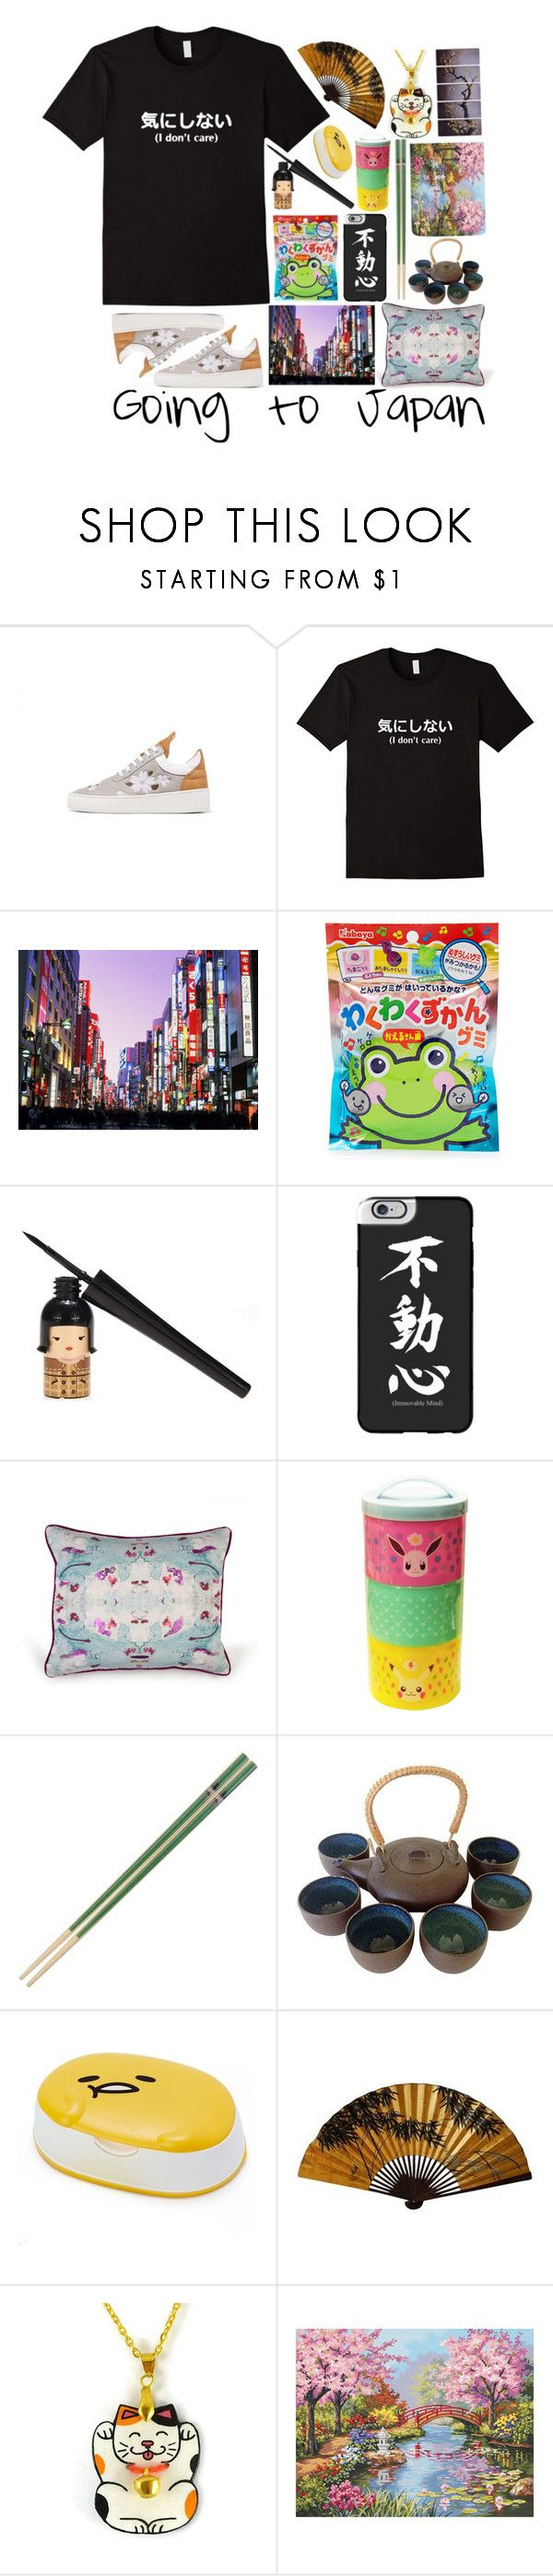 """""""Going to Japan this Summer"""" by princessfo-eva ❤ liked on Polyvore featuring Casetify and jcp"""